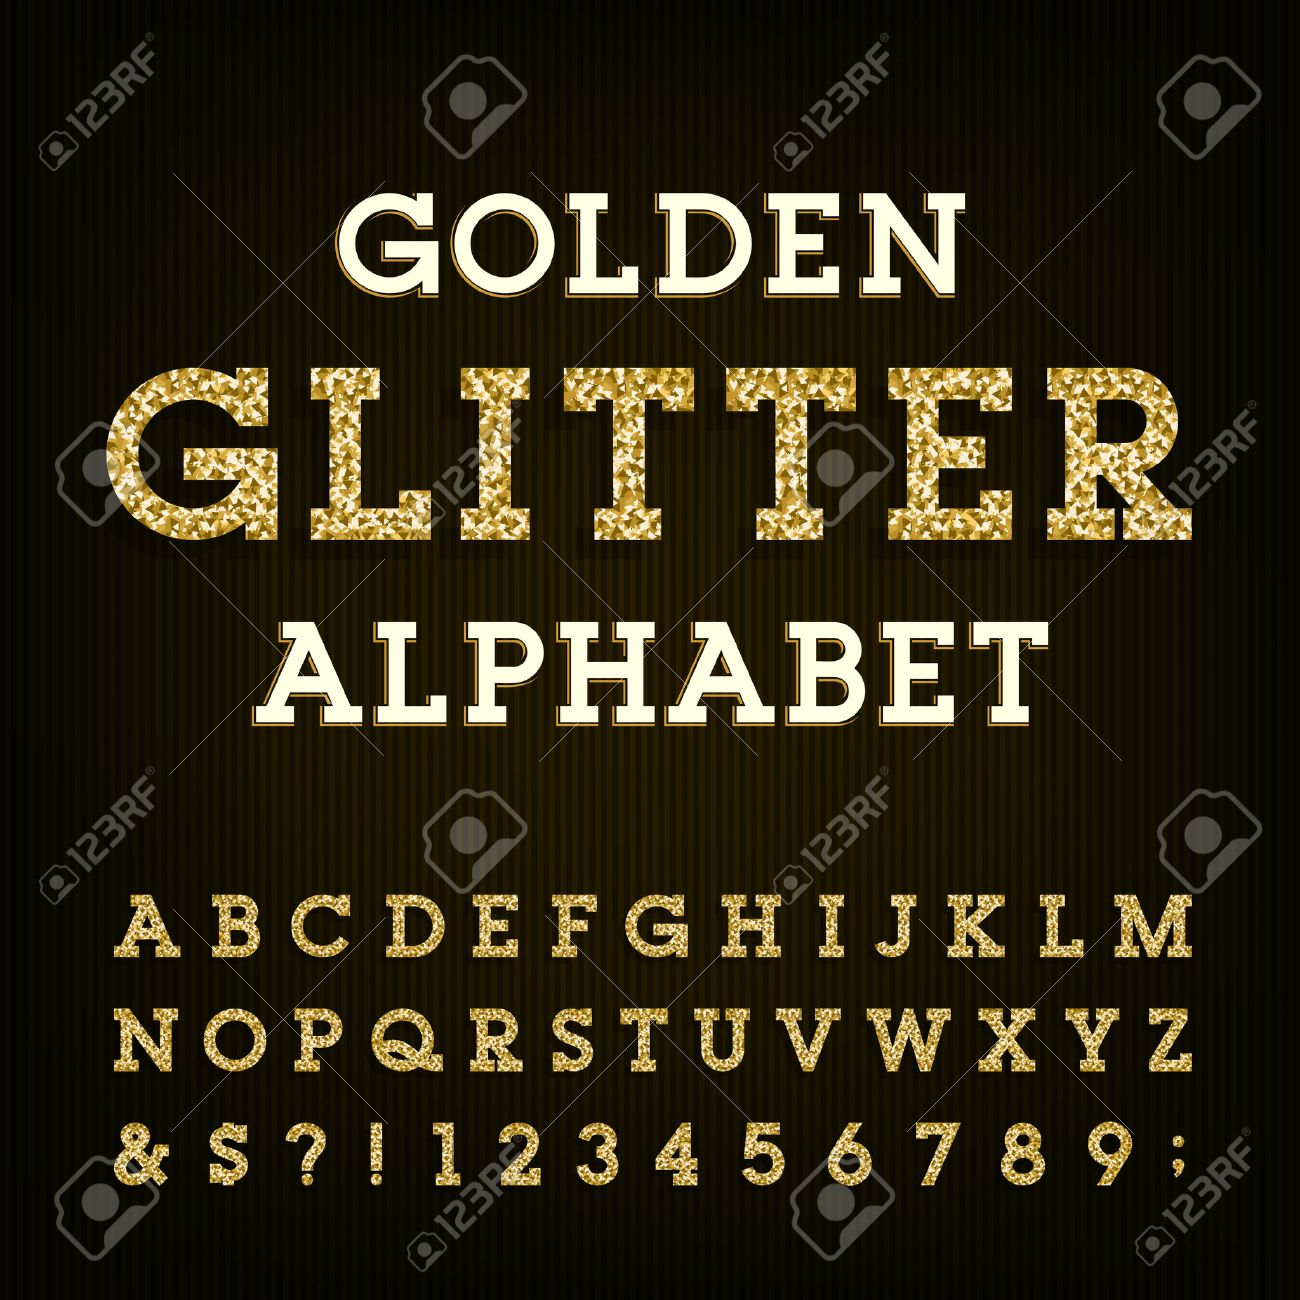 Golden glitter alphabet vector font. Letters, numbers and symbols.Vector typography for labels, headlines, posters etc. - 51270777